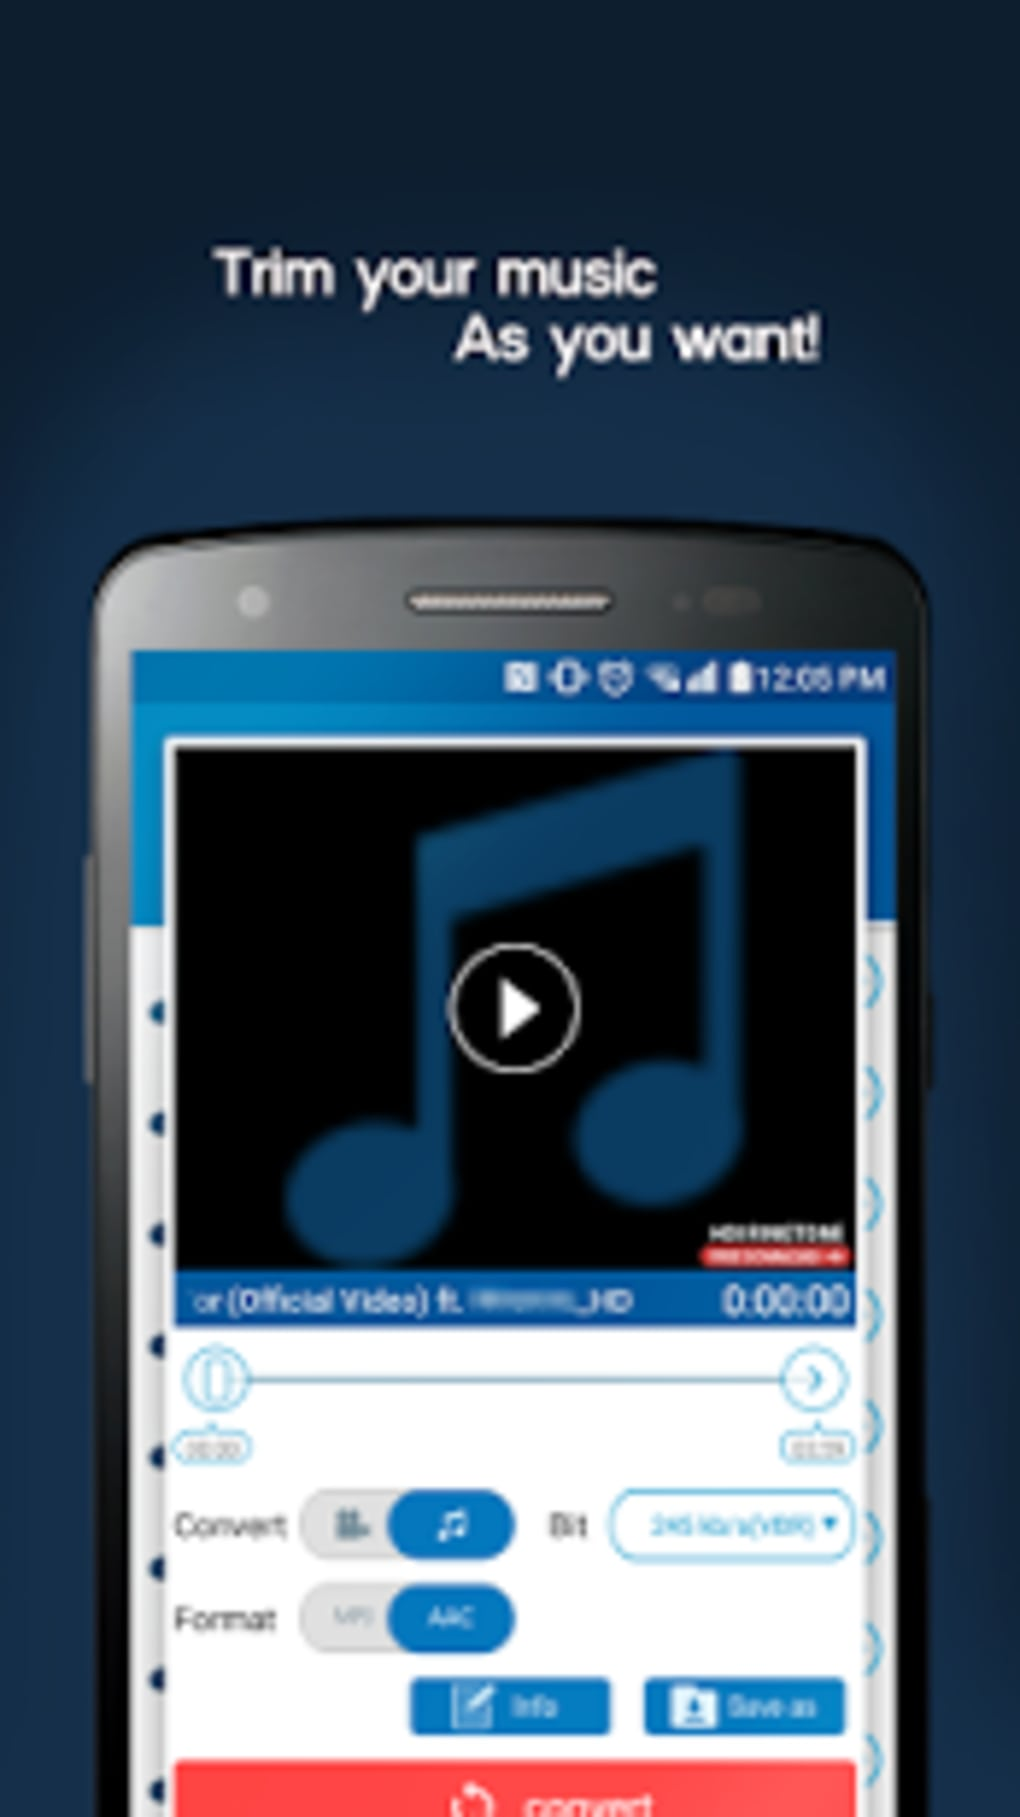 MP3 Video Converter APK for Android - Download